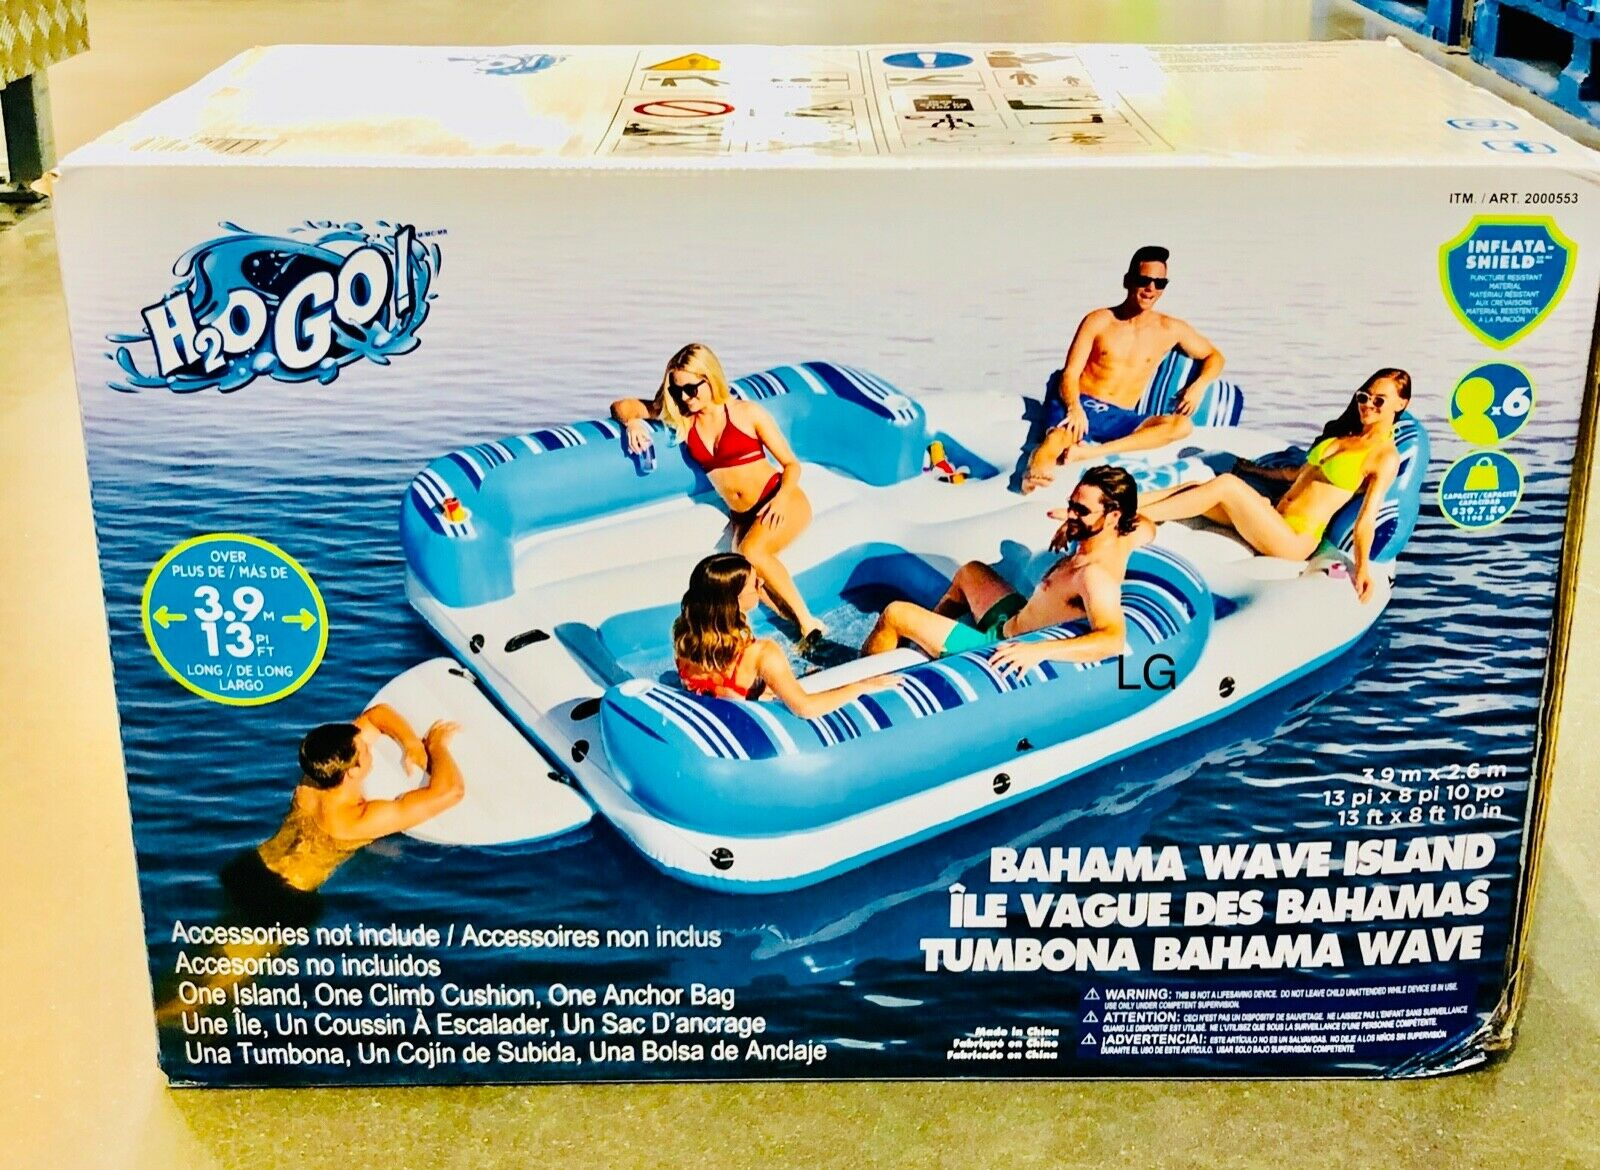 Hydro-Force 13ft (396cm) 6 Person Bahama Wave Inflatable Island H20 GO